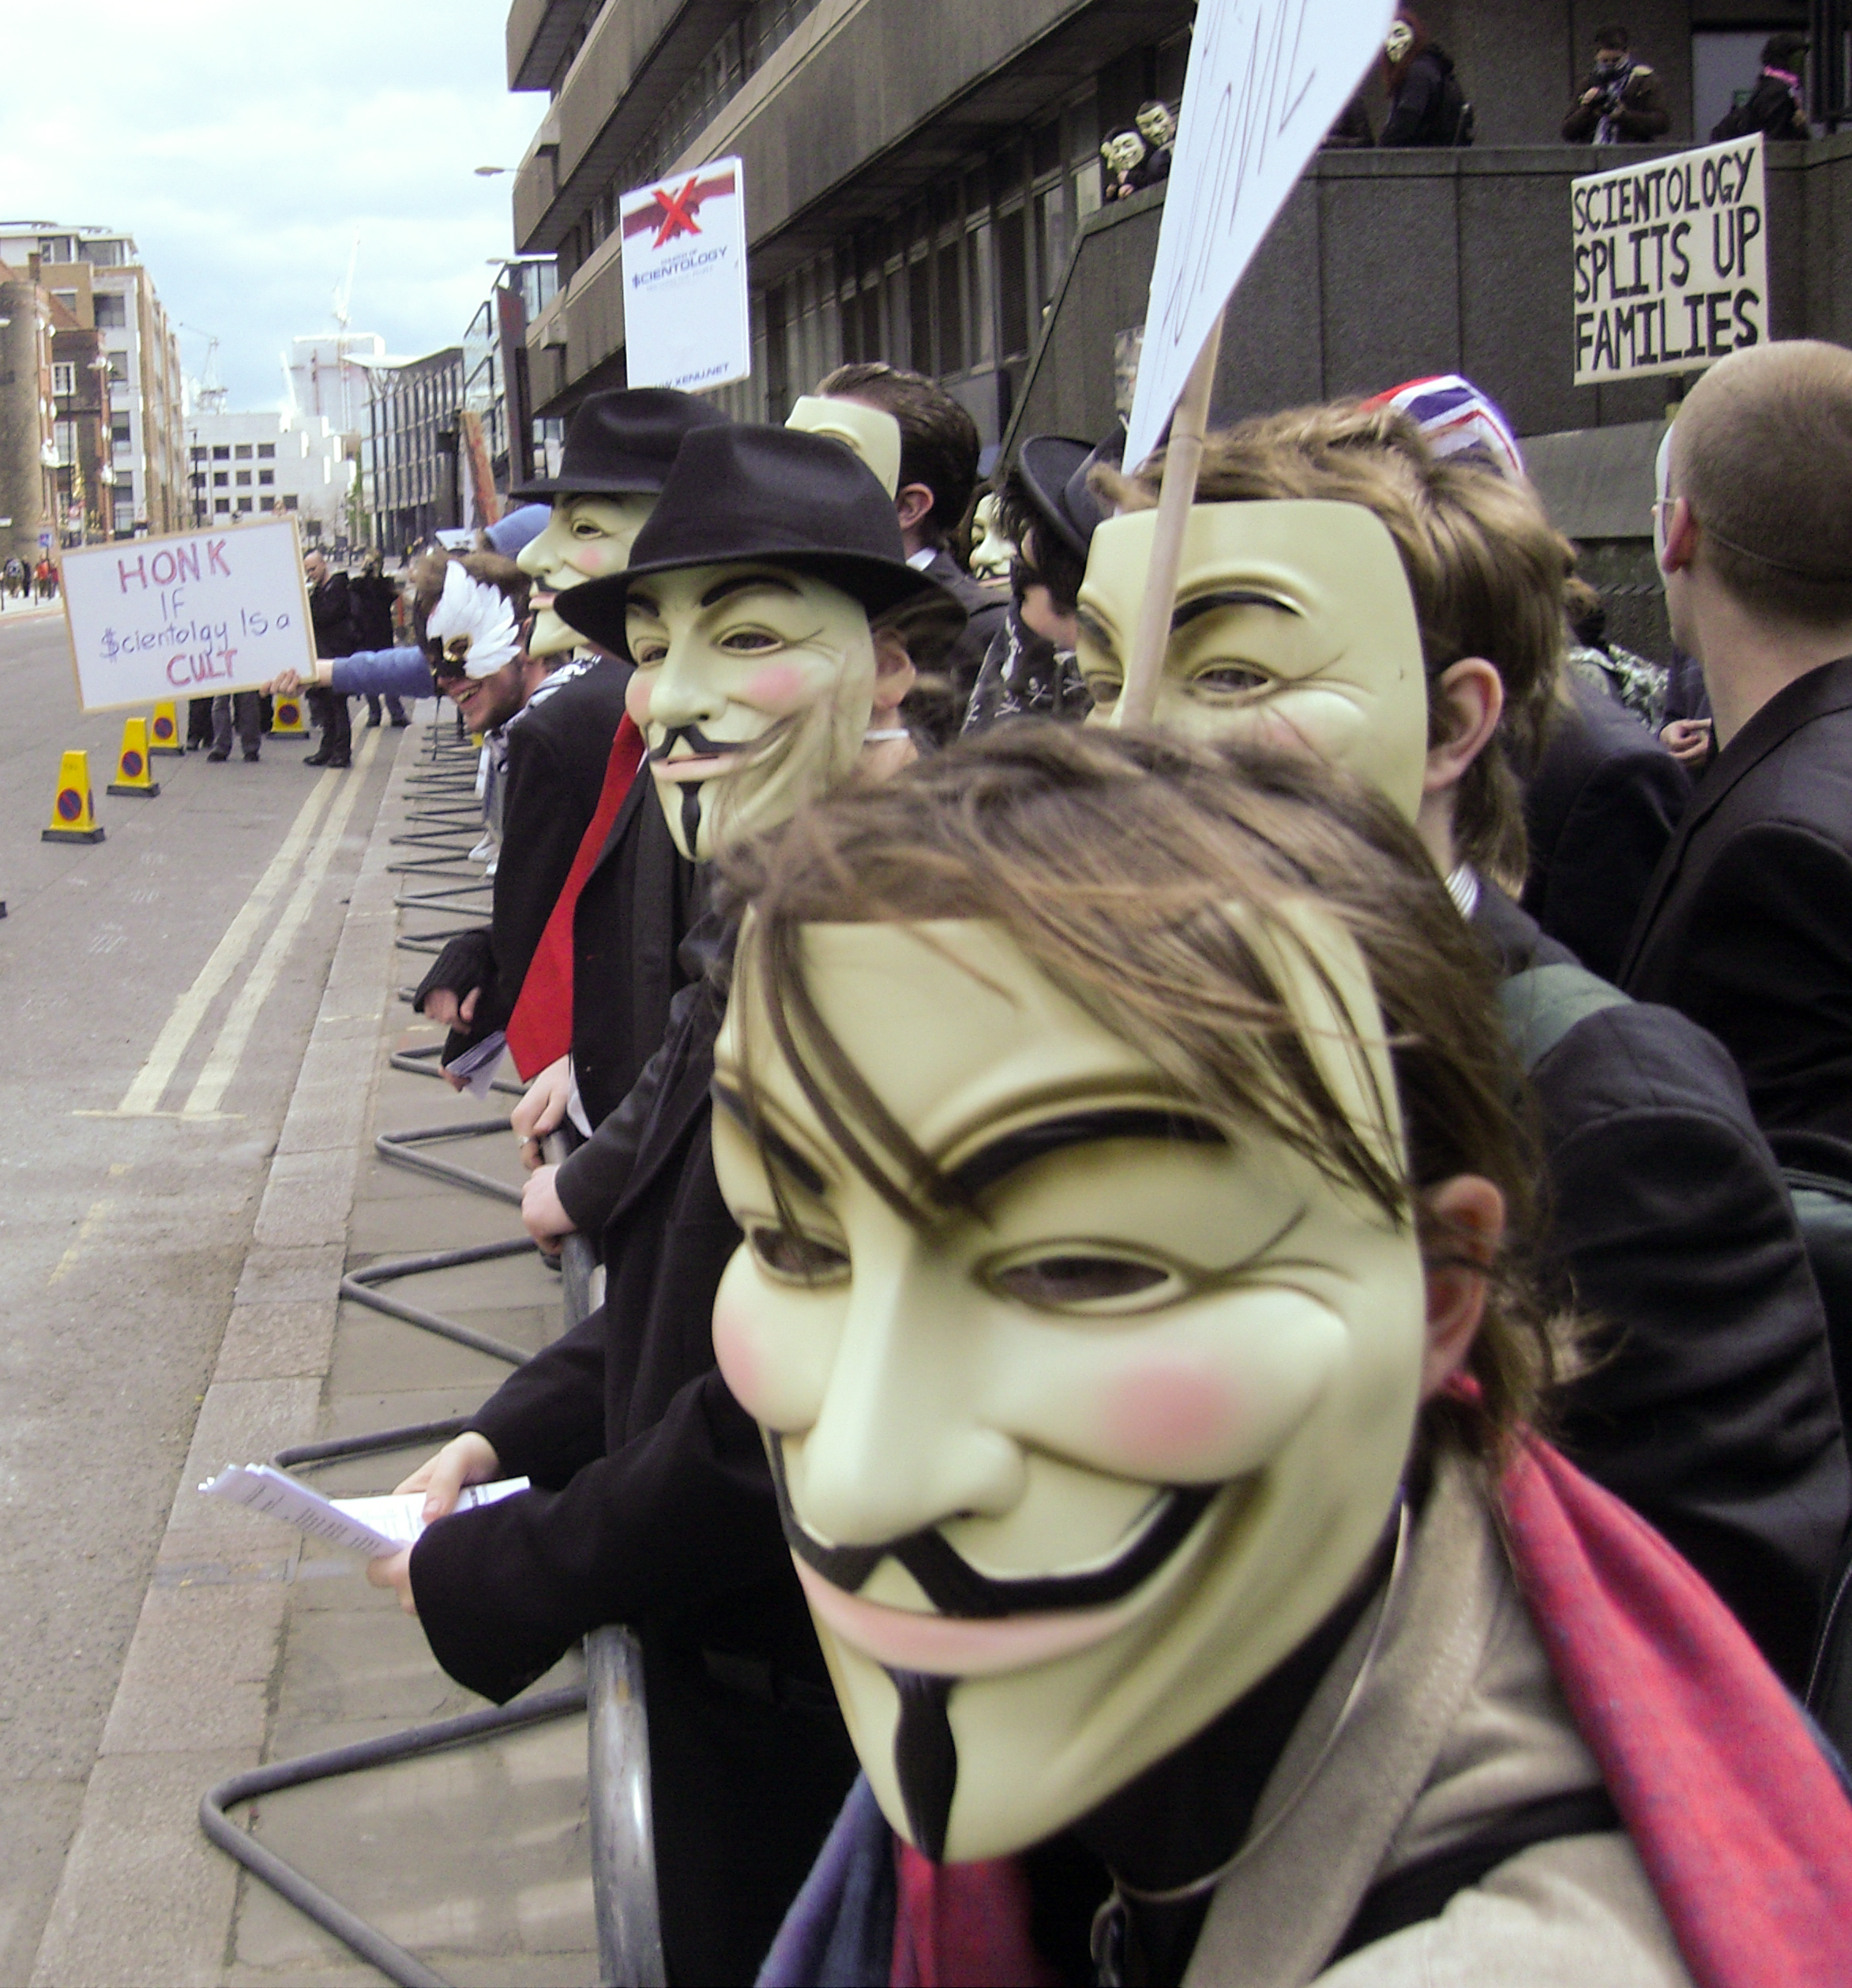 Photo of Anonymous protesting Scientology in London, by JamesHarrison [Public domain],  via Wikimedia Commons